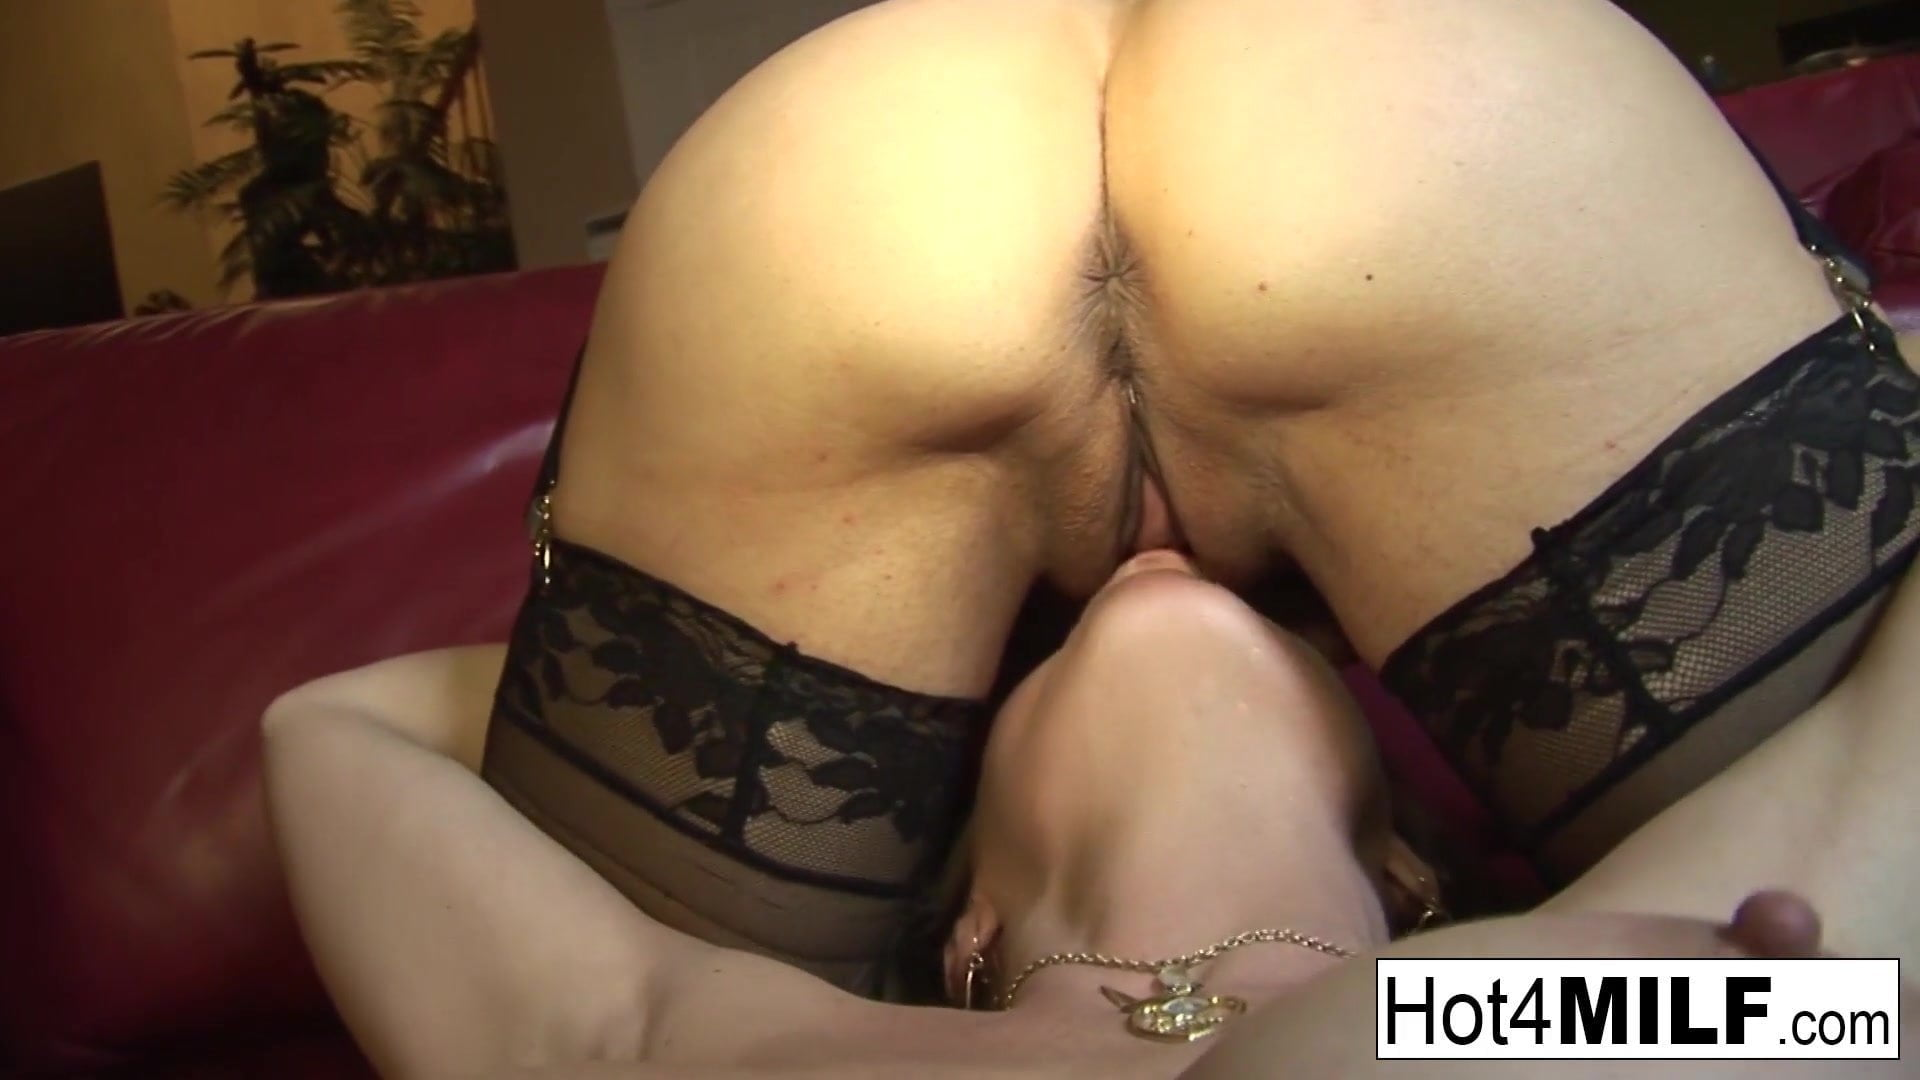 .Big tit MILFs Vanessa and June eat each other out.